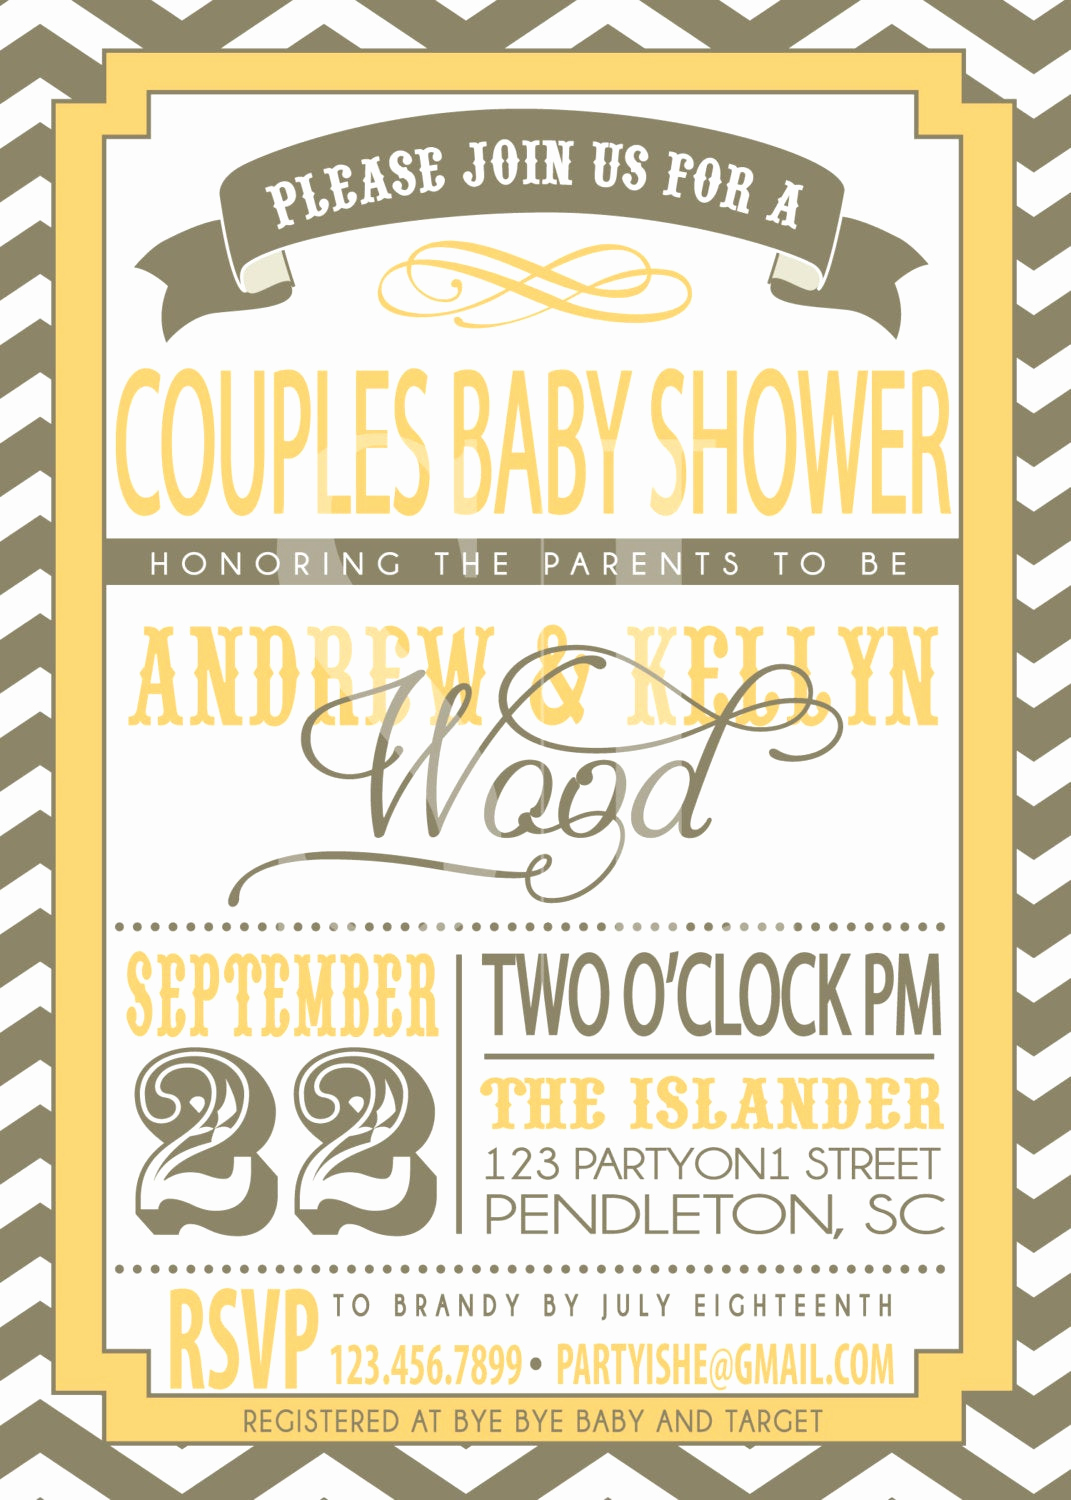 Couple Shower Invitation Wording Luxury Couples Baby Shower Invitation